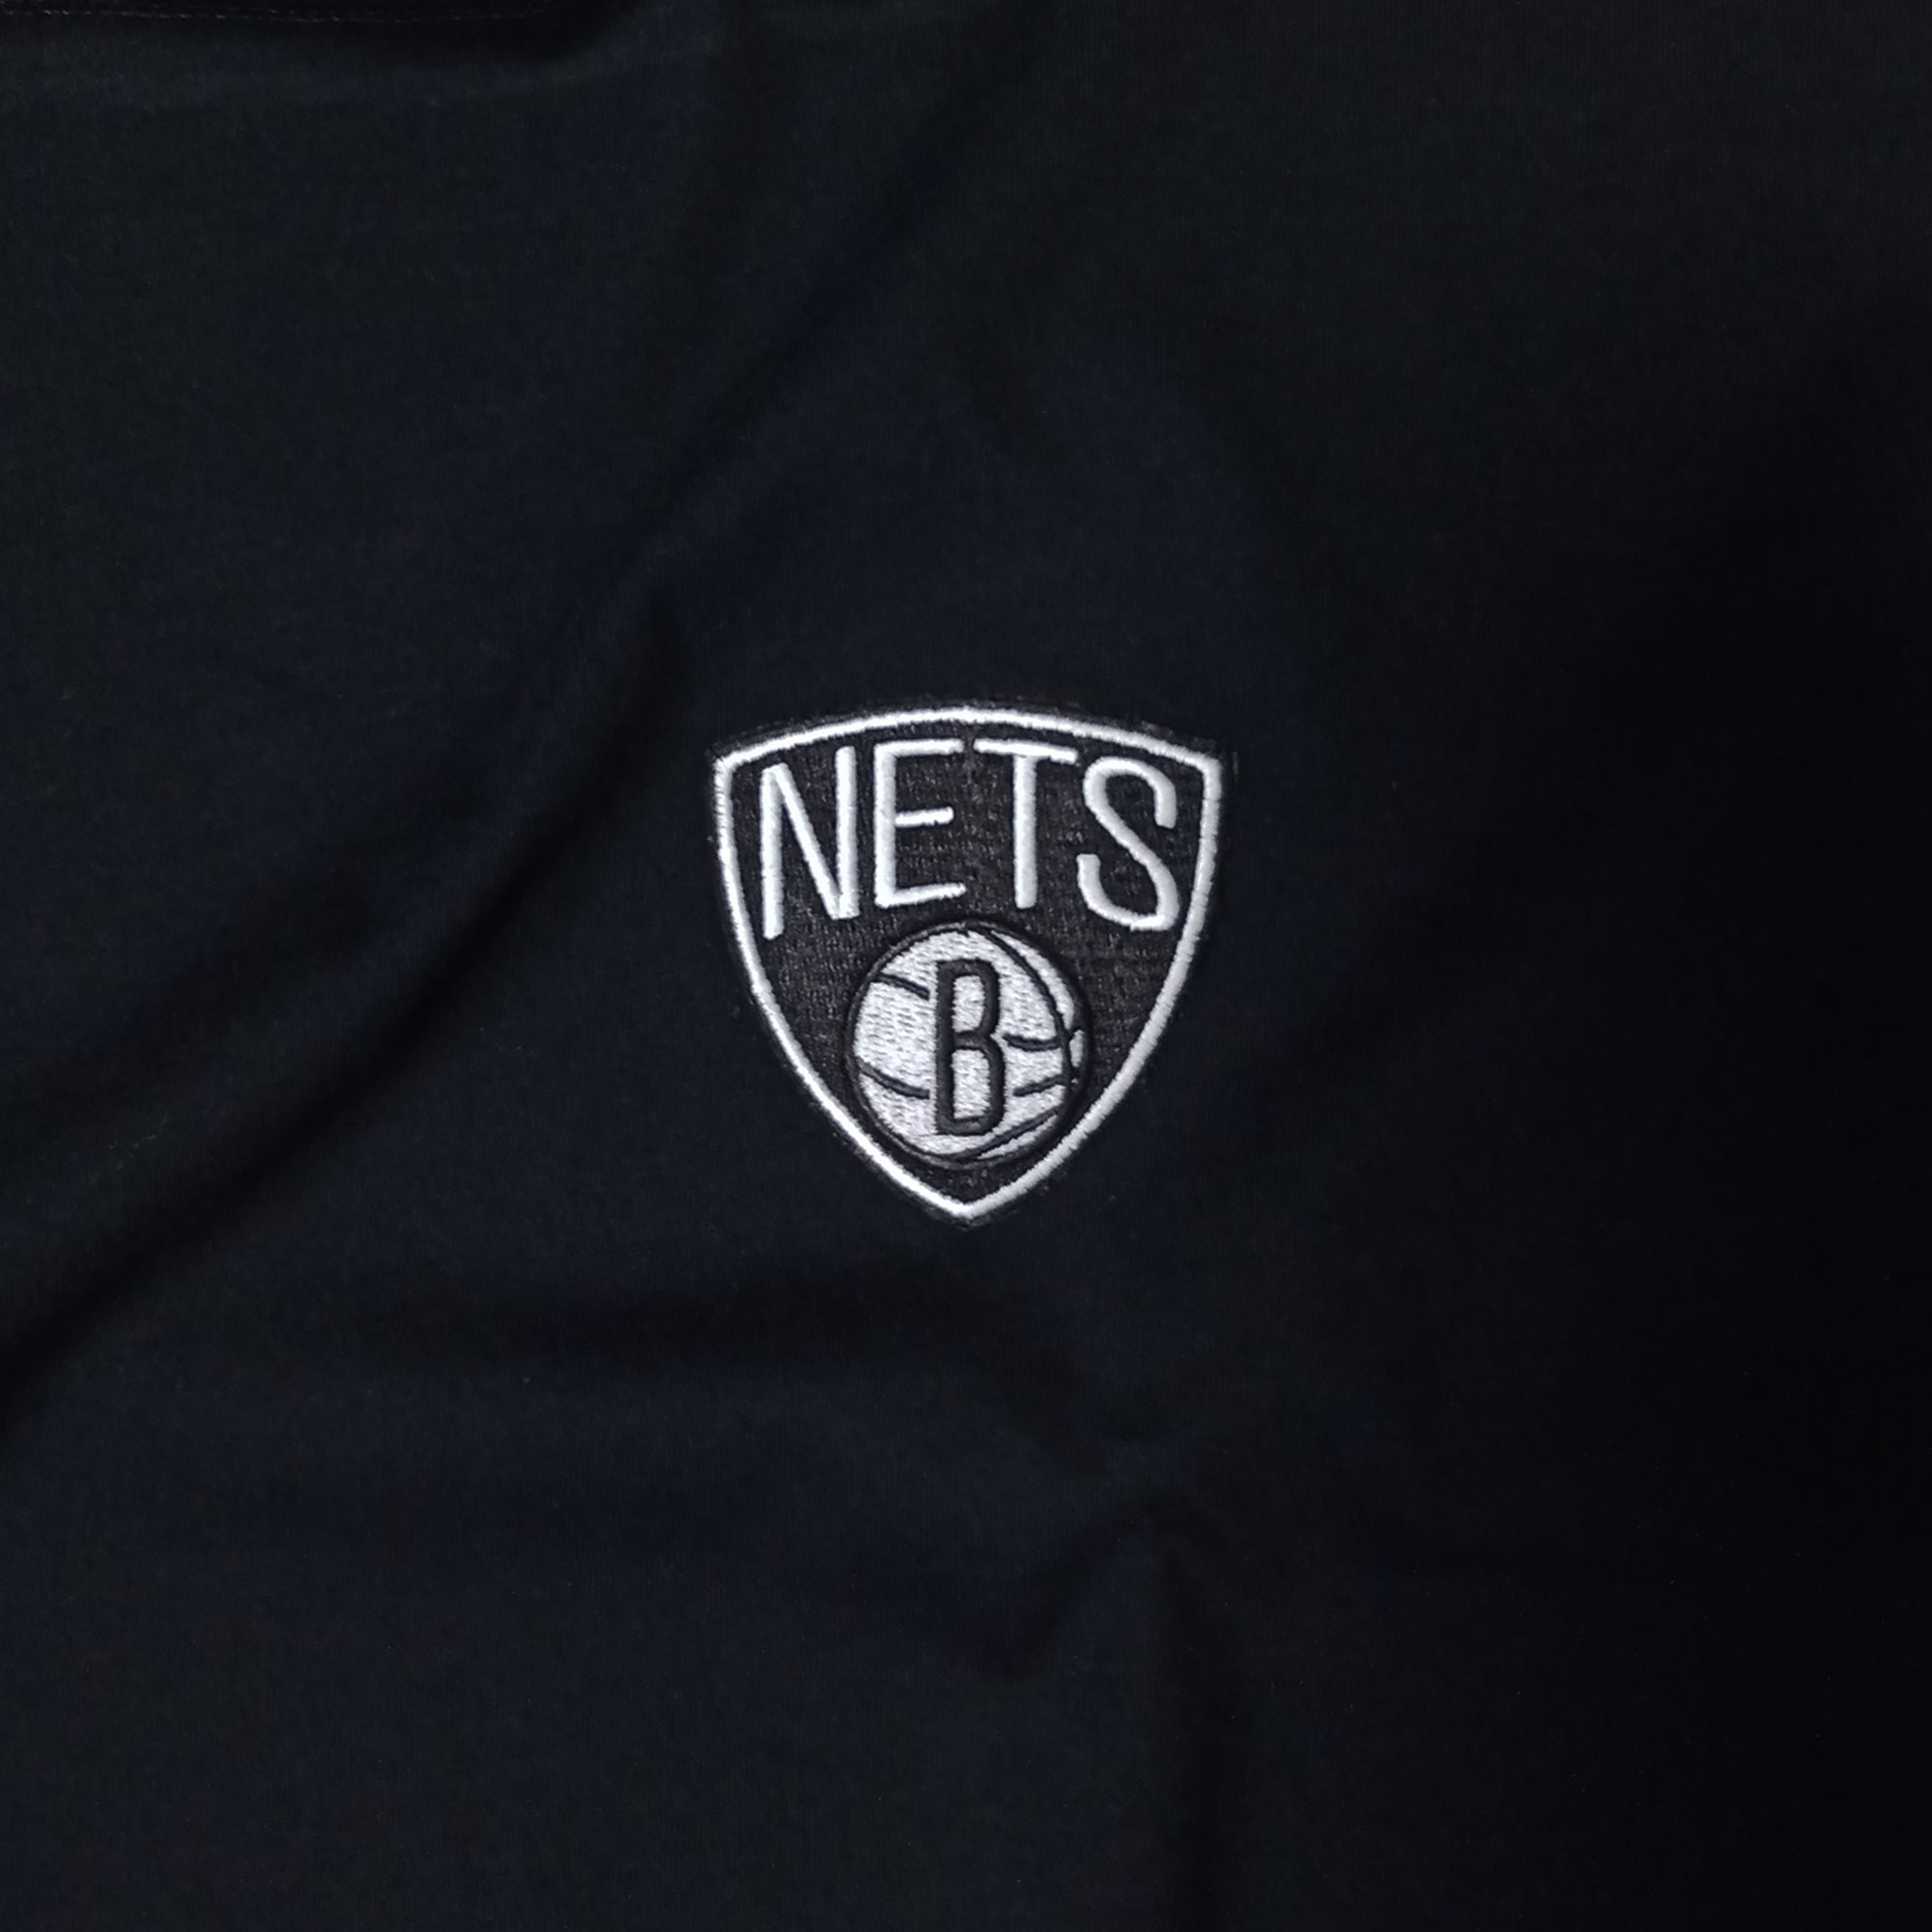 Brooklyn Nets Basic (Örme)  (BSC-GRY-EMBR-BRK.NETS)